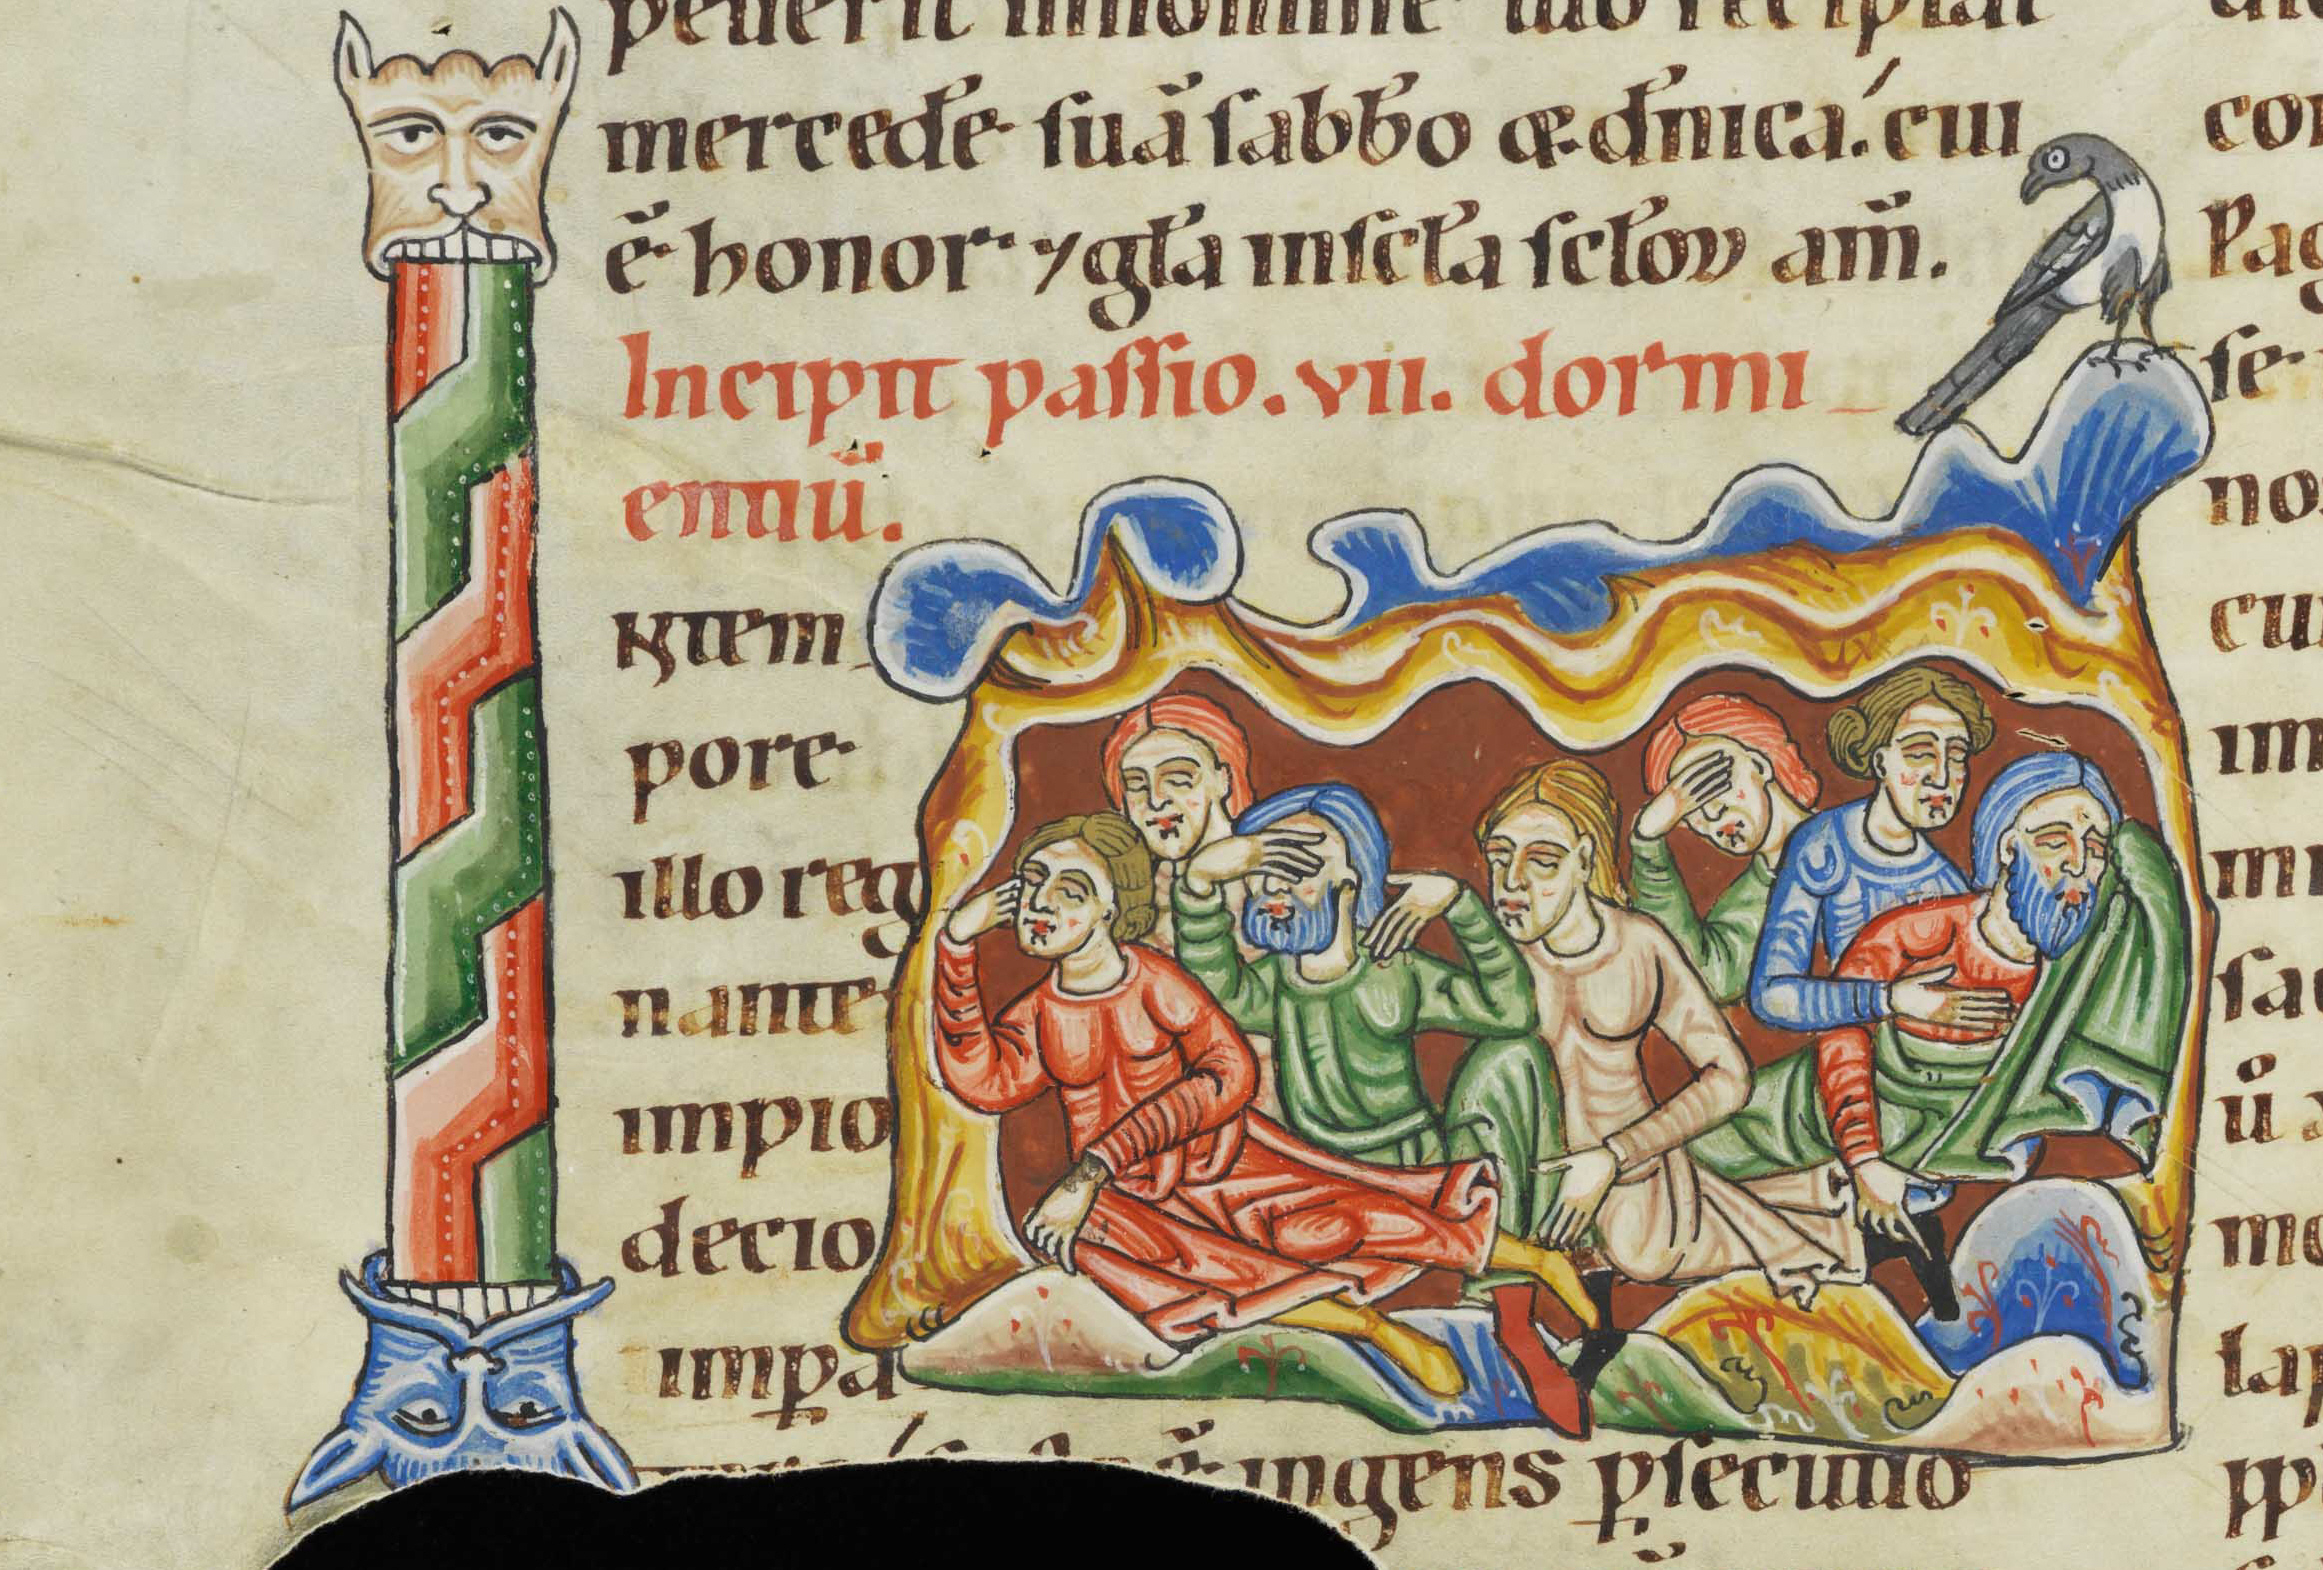 http://upload.wikimedia.org/wikipedia/commons/9/9c/Codex_Bodmer_127_125v_Detail.jpg